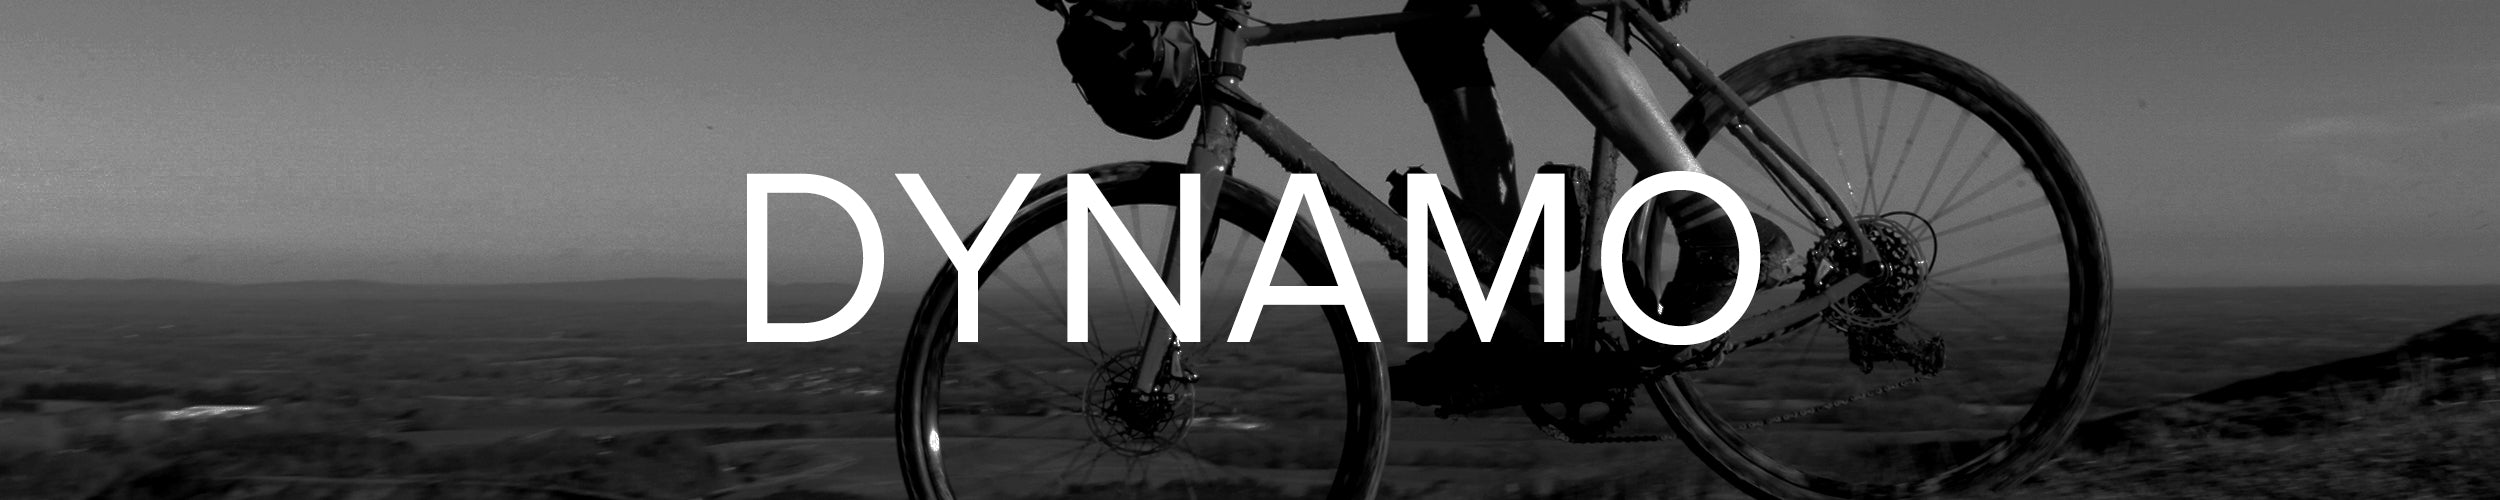 Dynamo-wheelset-collection